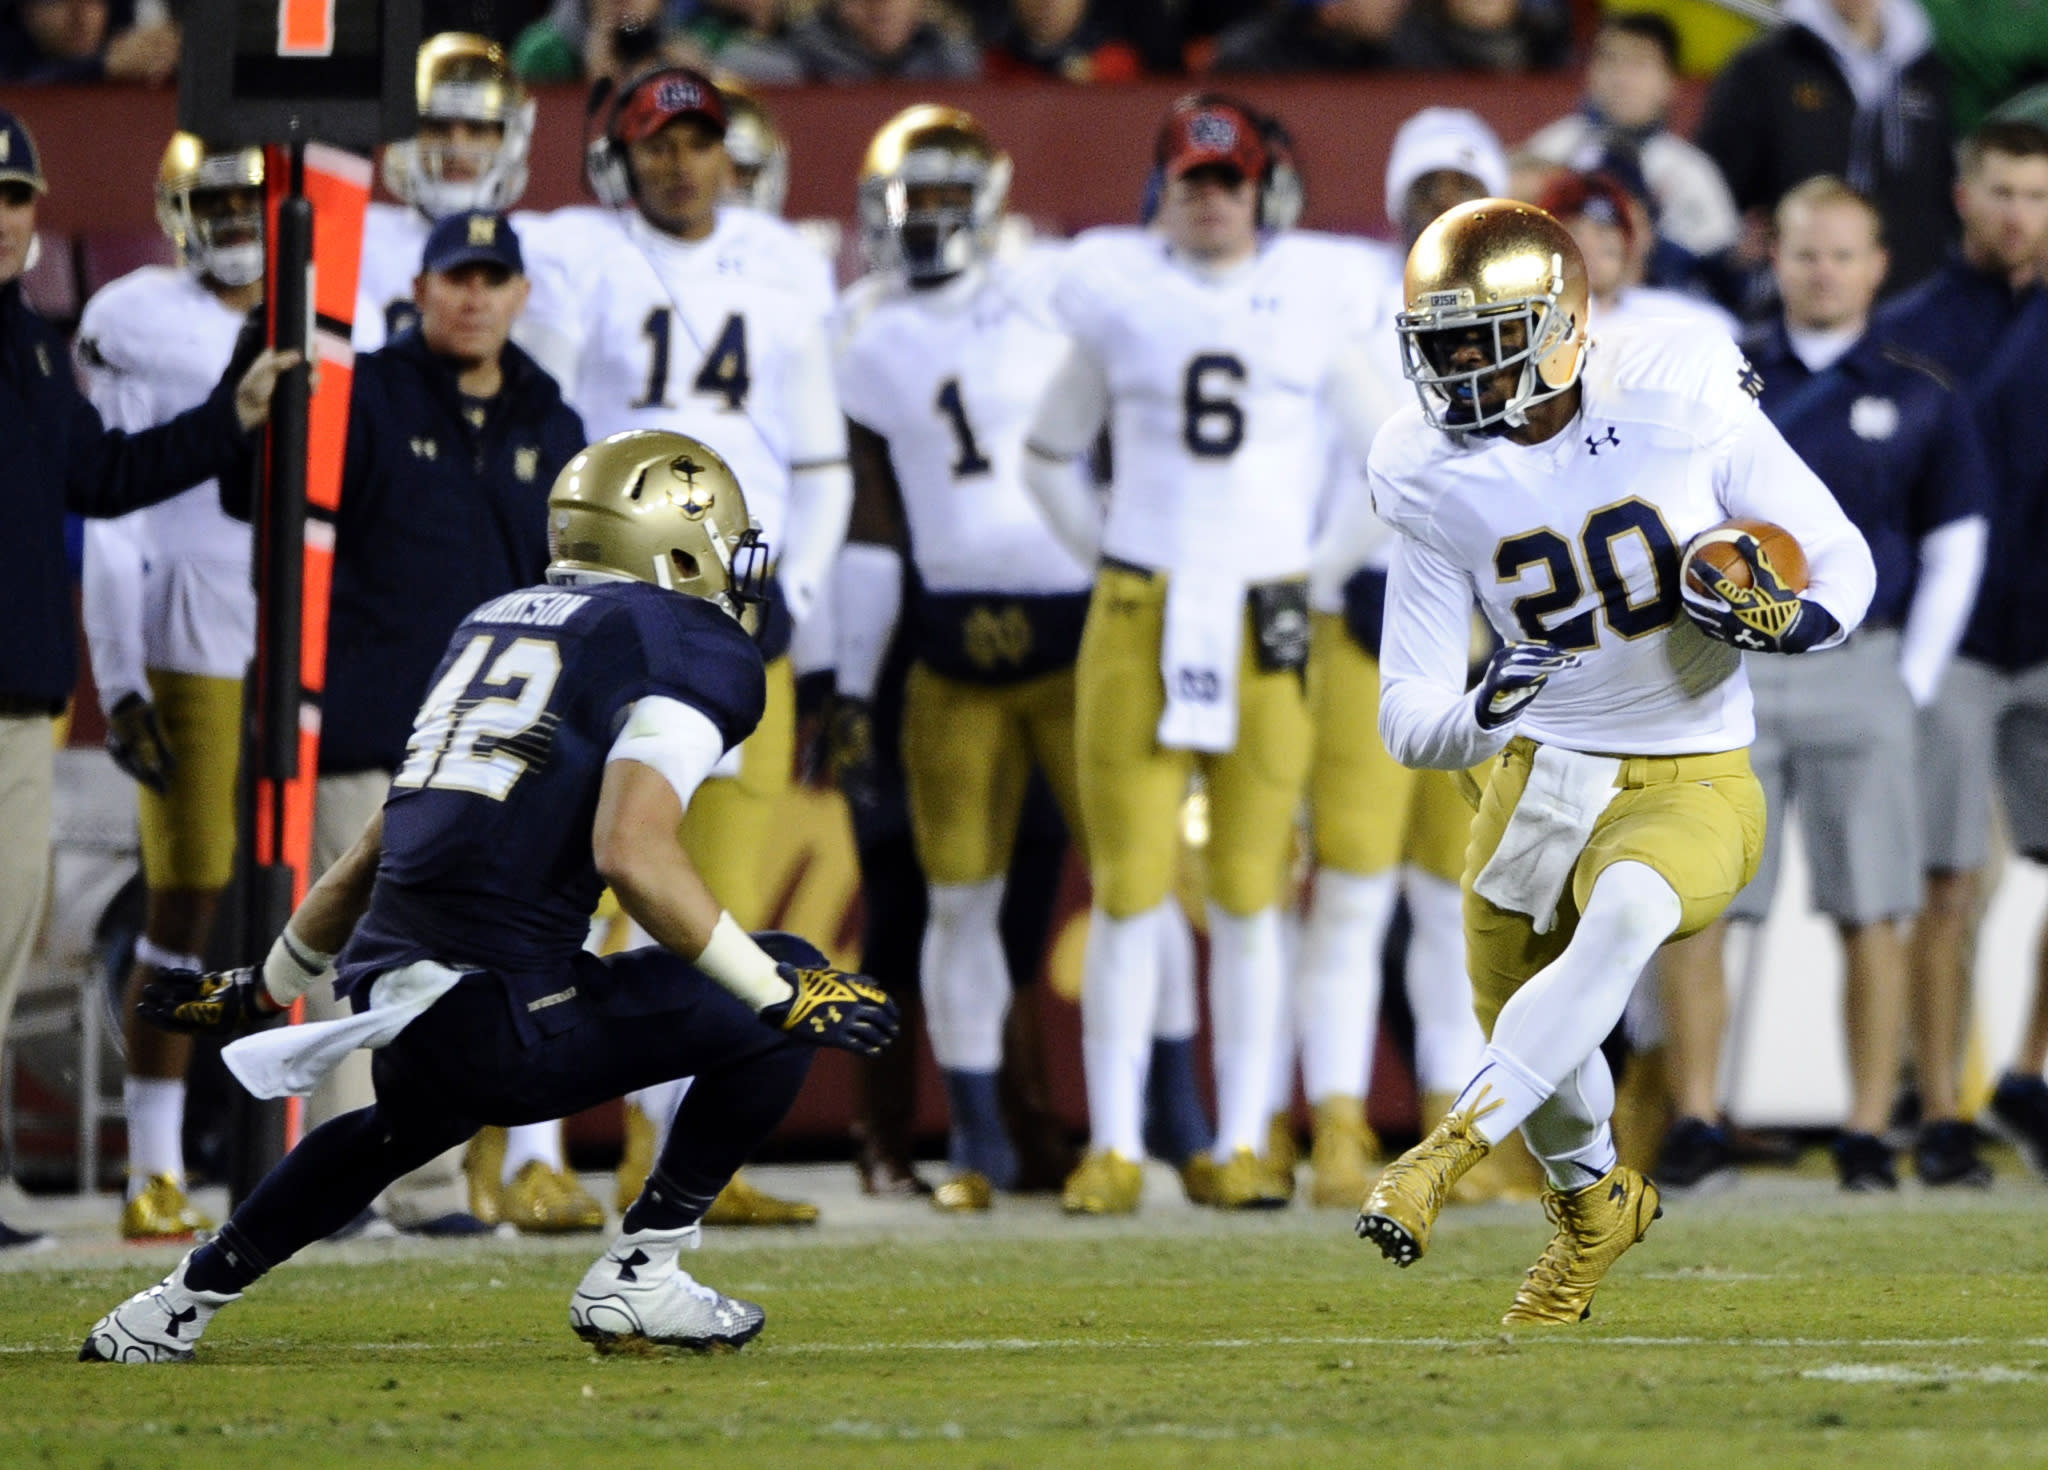 Report: Group pushing for Navy-Notre Dame game in San Diego